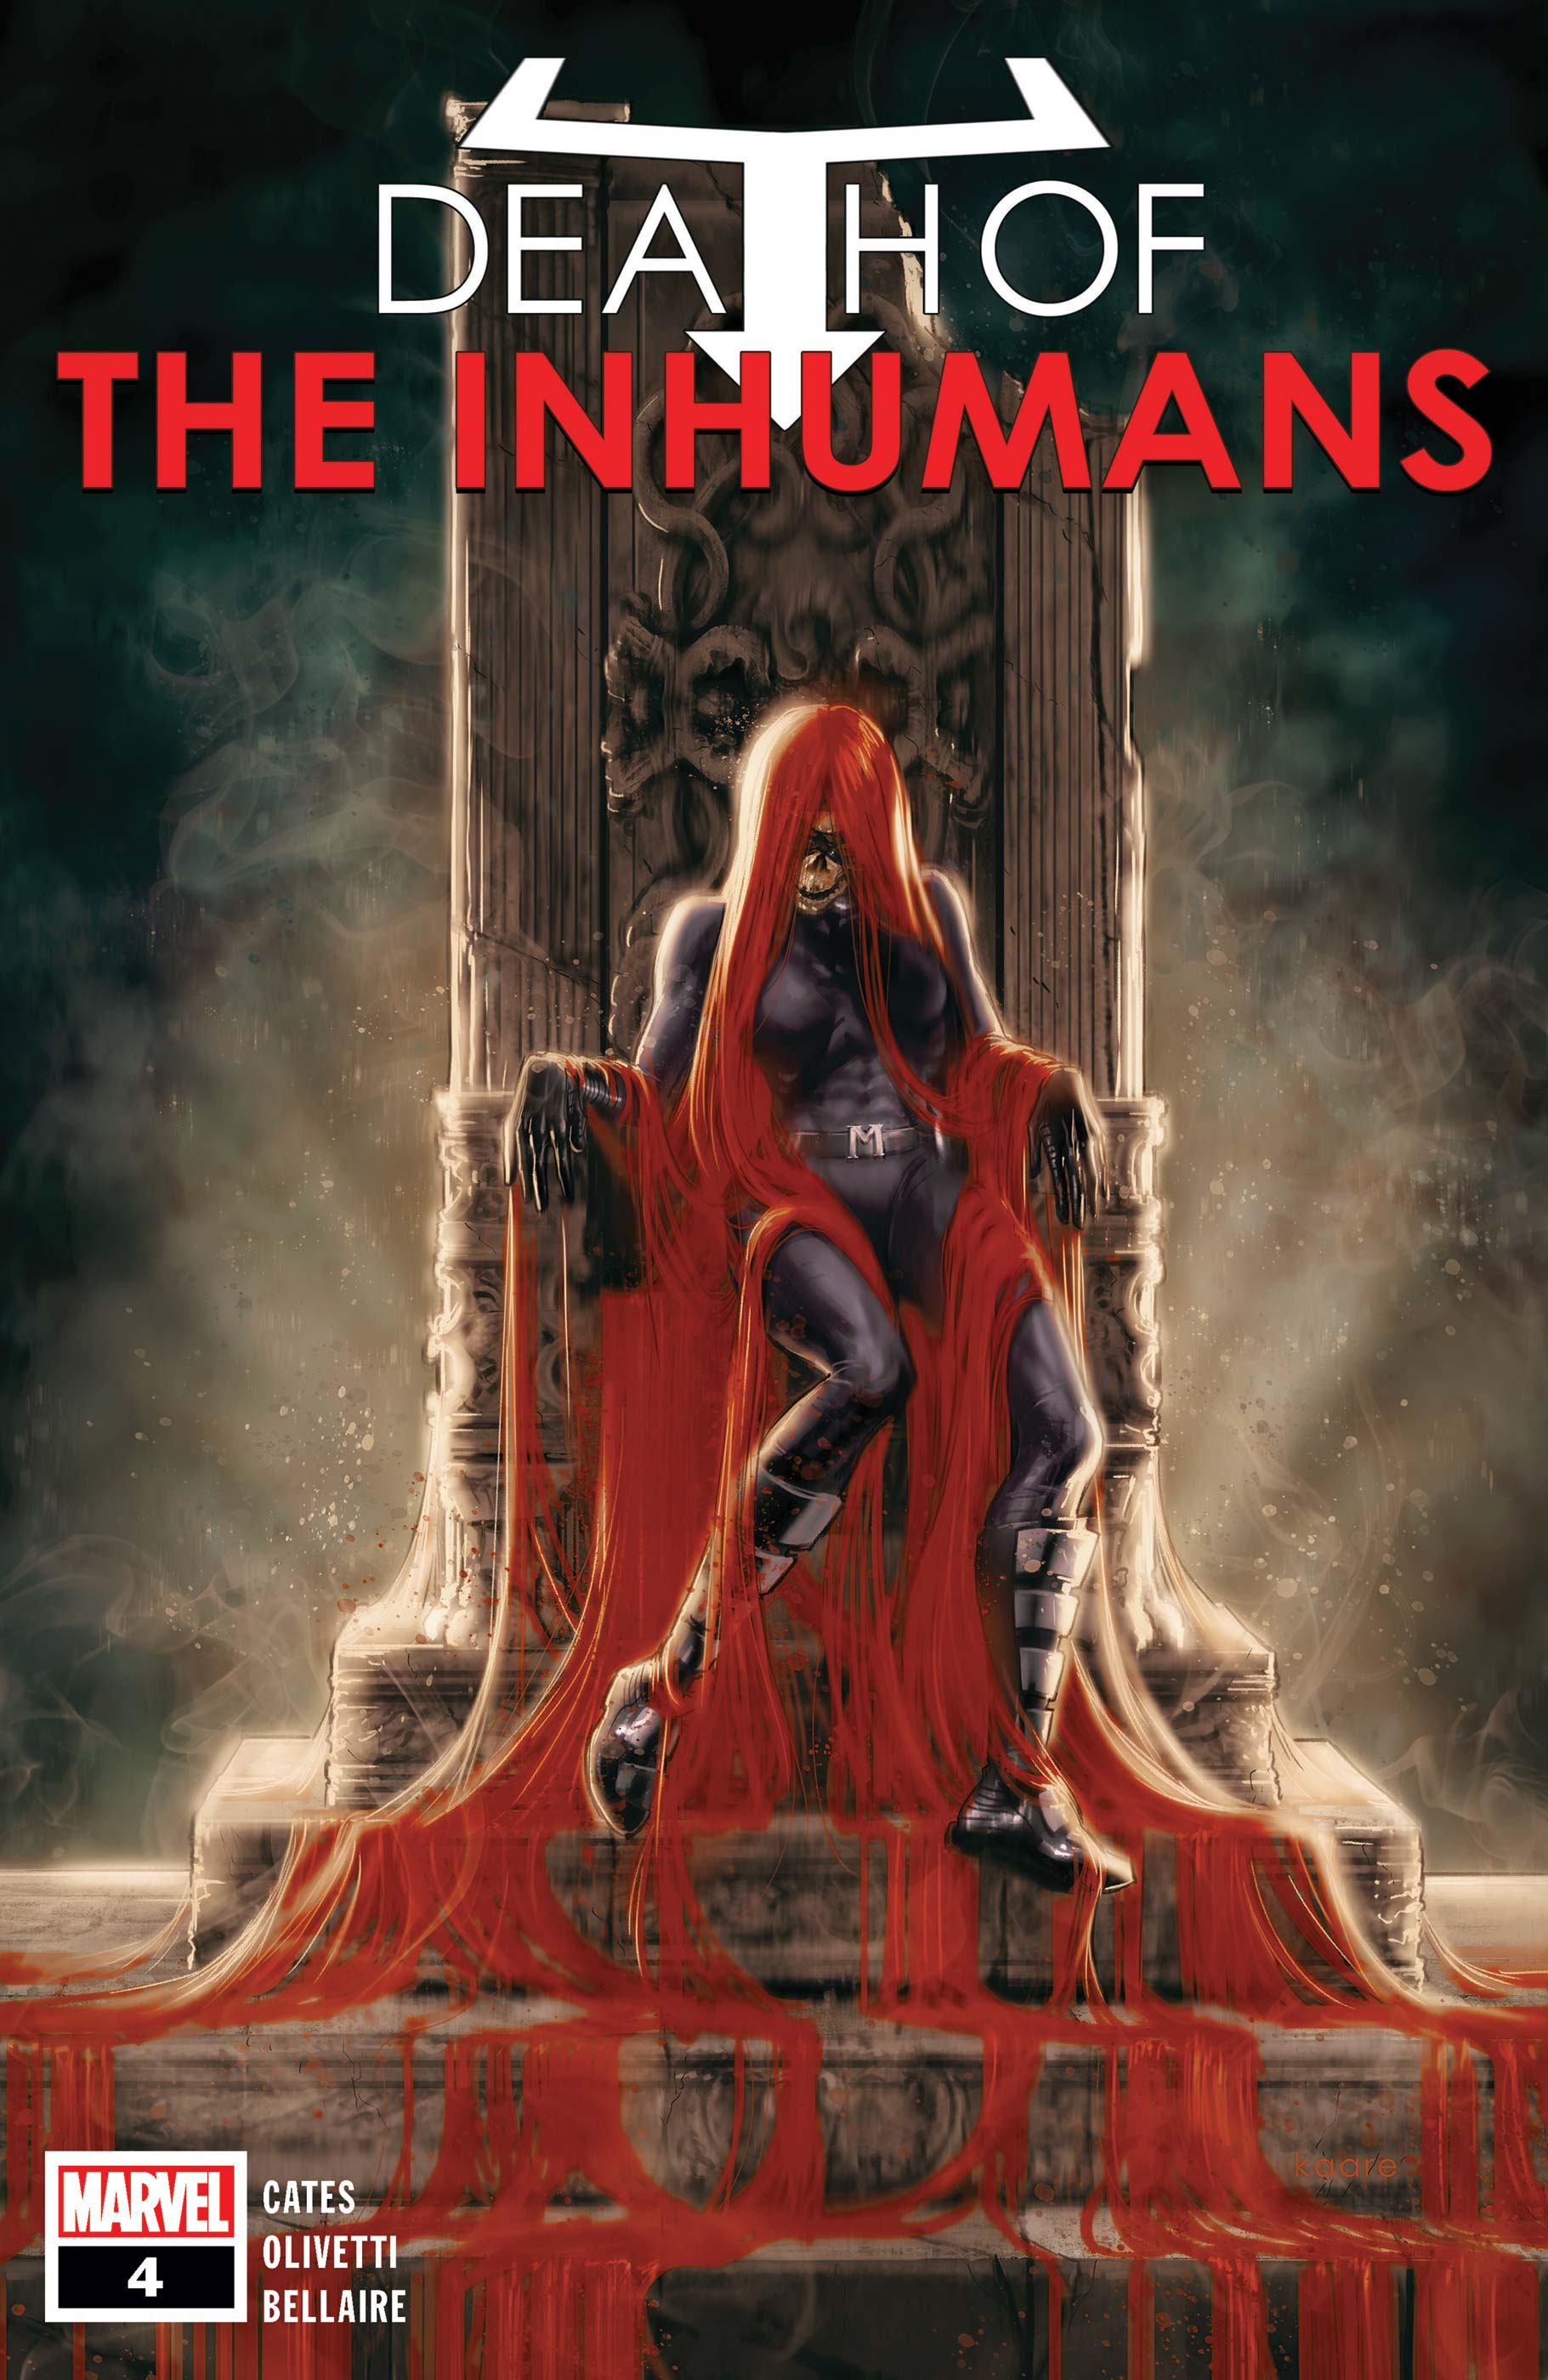 Death of the Inhumans (2018) #4